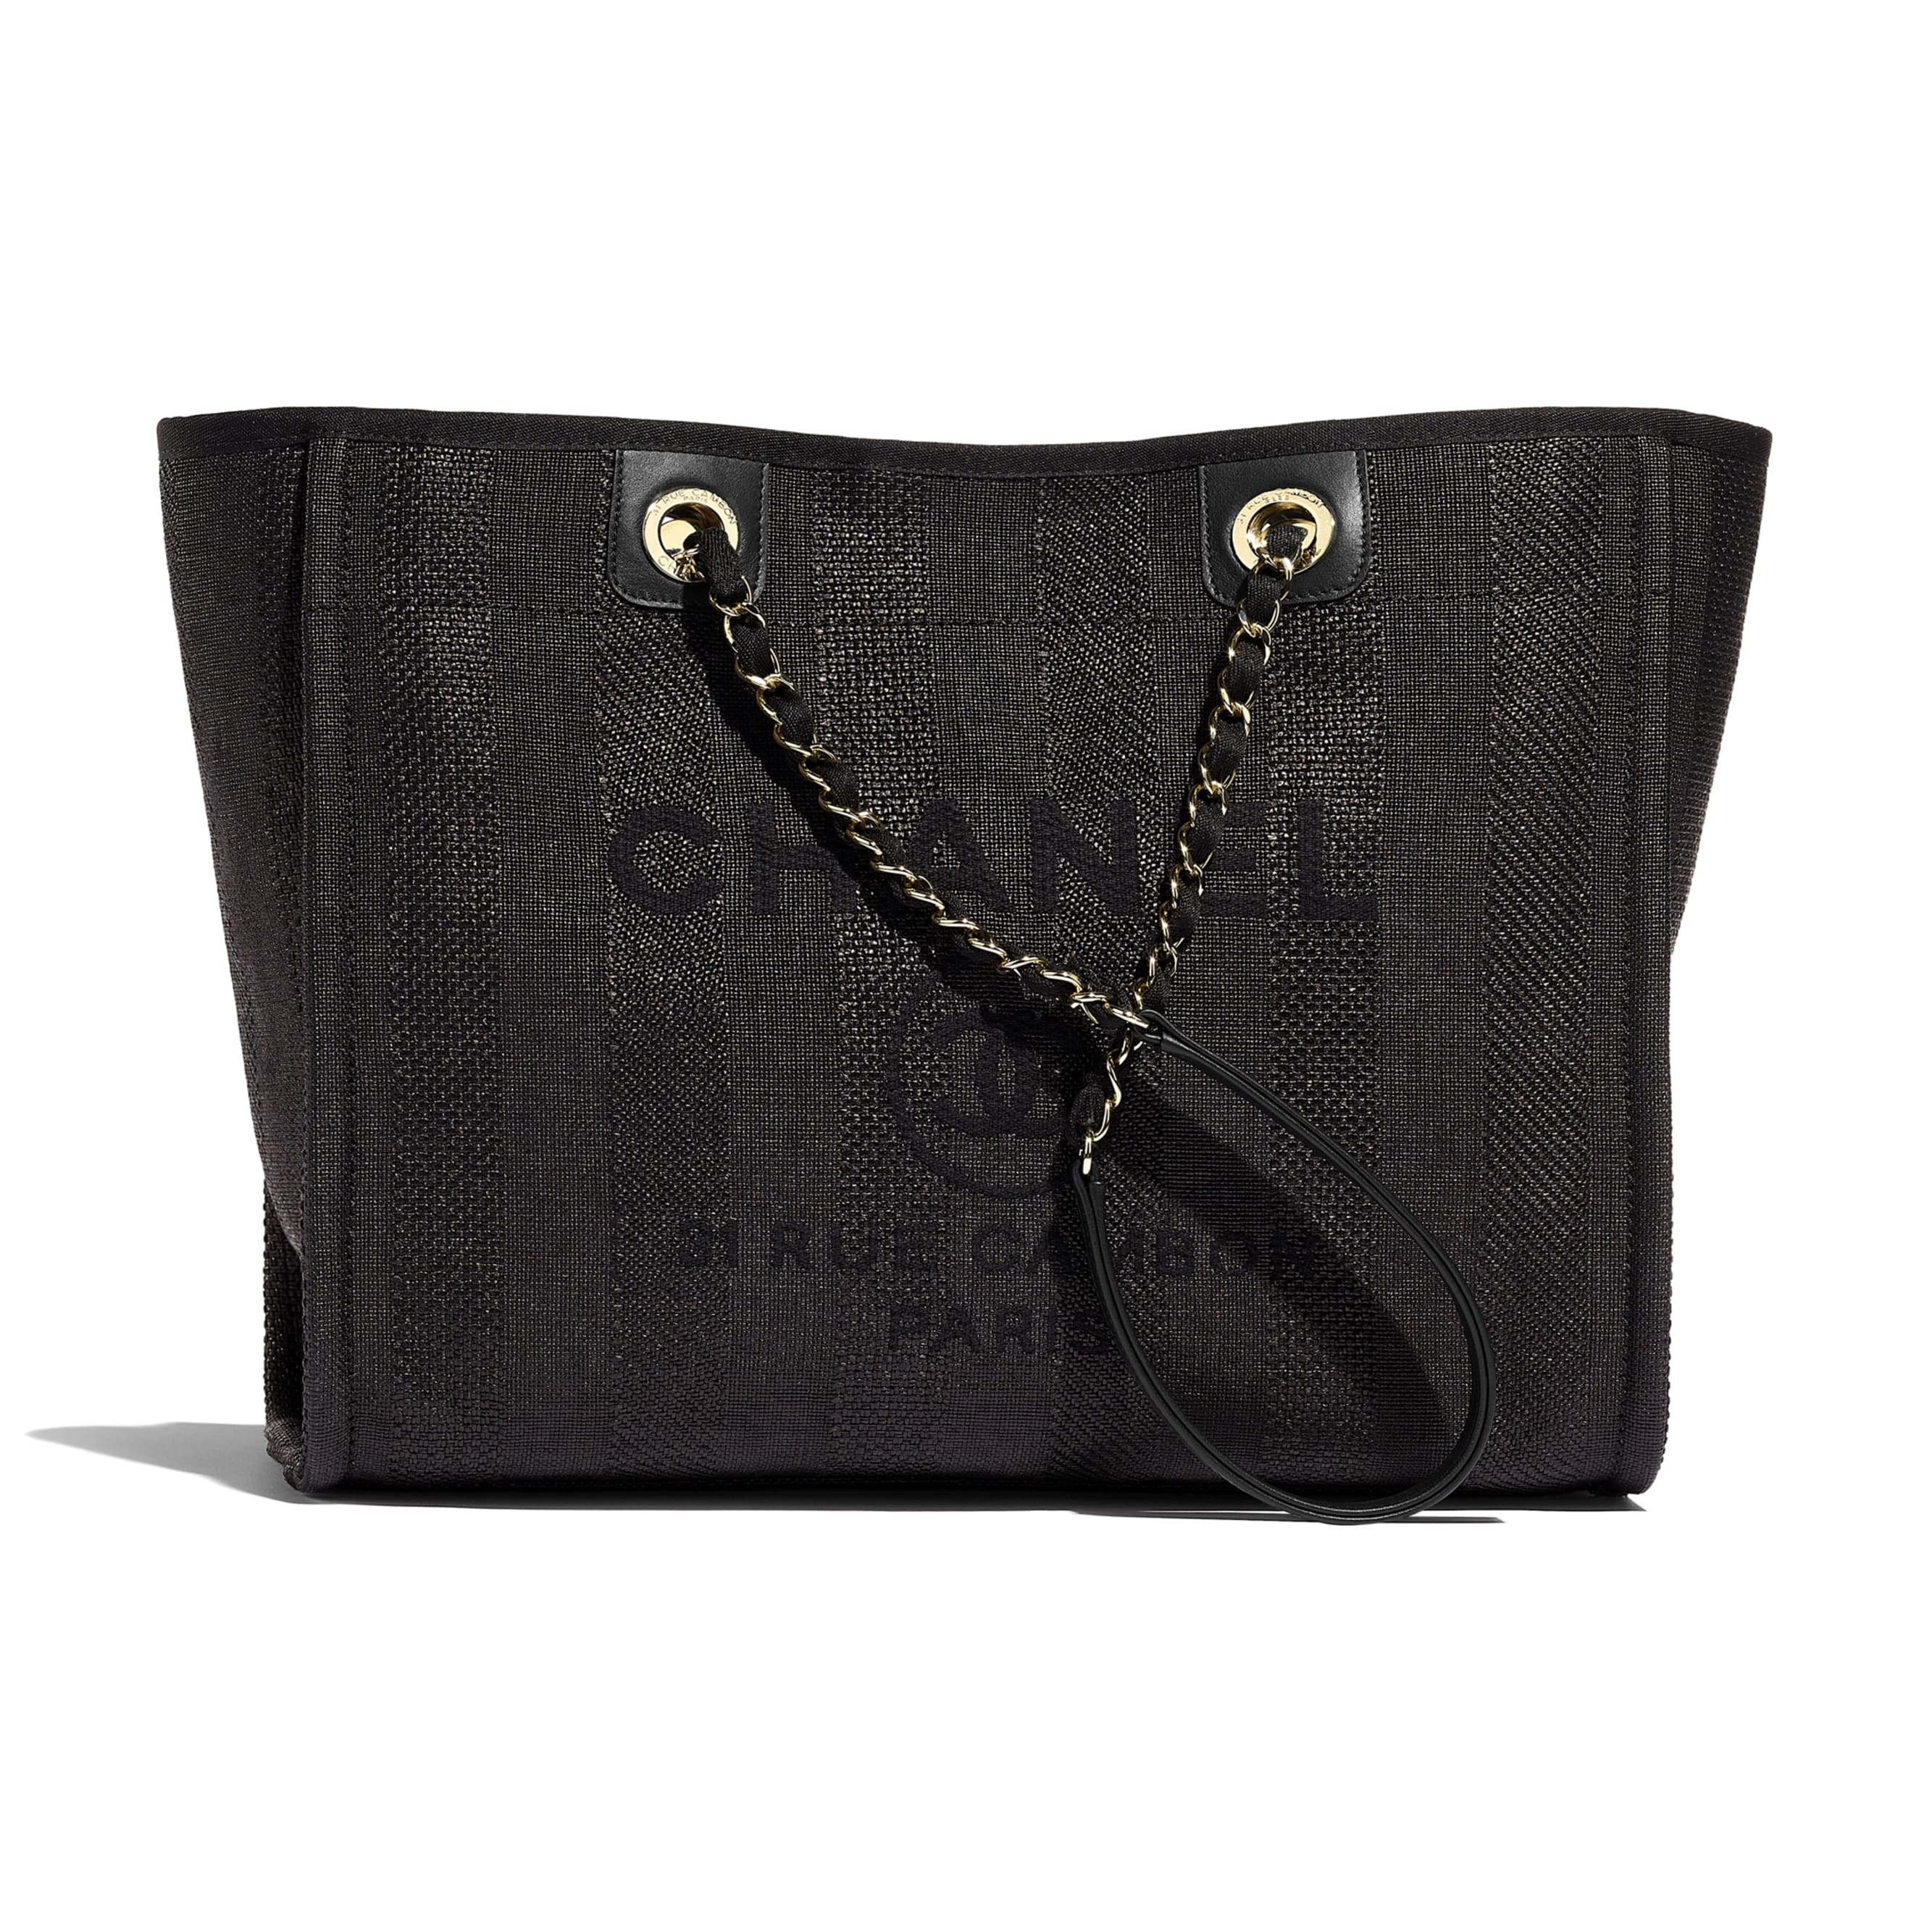 Large Tote - Black - Mixed Fibres, Calfskin & Gold-Tone Metal - Default view - see standard sized version